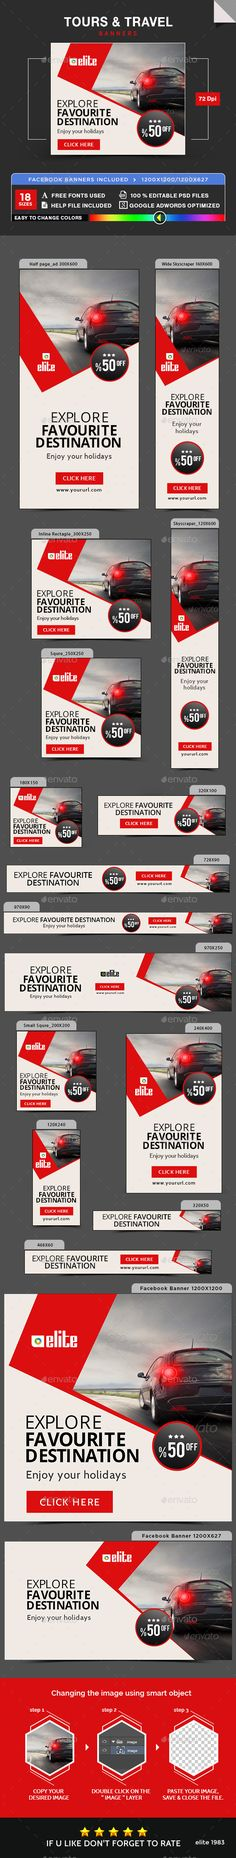 Buy Tours & Travel Banners by Hyov on GraphicRiver. Promote your Products and services with this great looking Banner Set. Web Banner, Banner Template, Creative Poster Design, Creative Posters, Ad Design, Menu Design, Design Ideas, Hiring Poster, Real Estate Banner